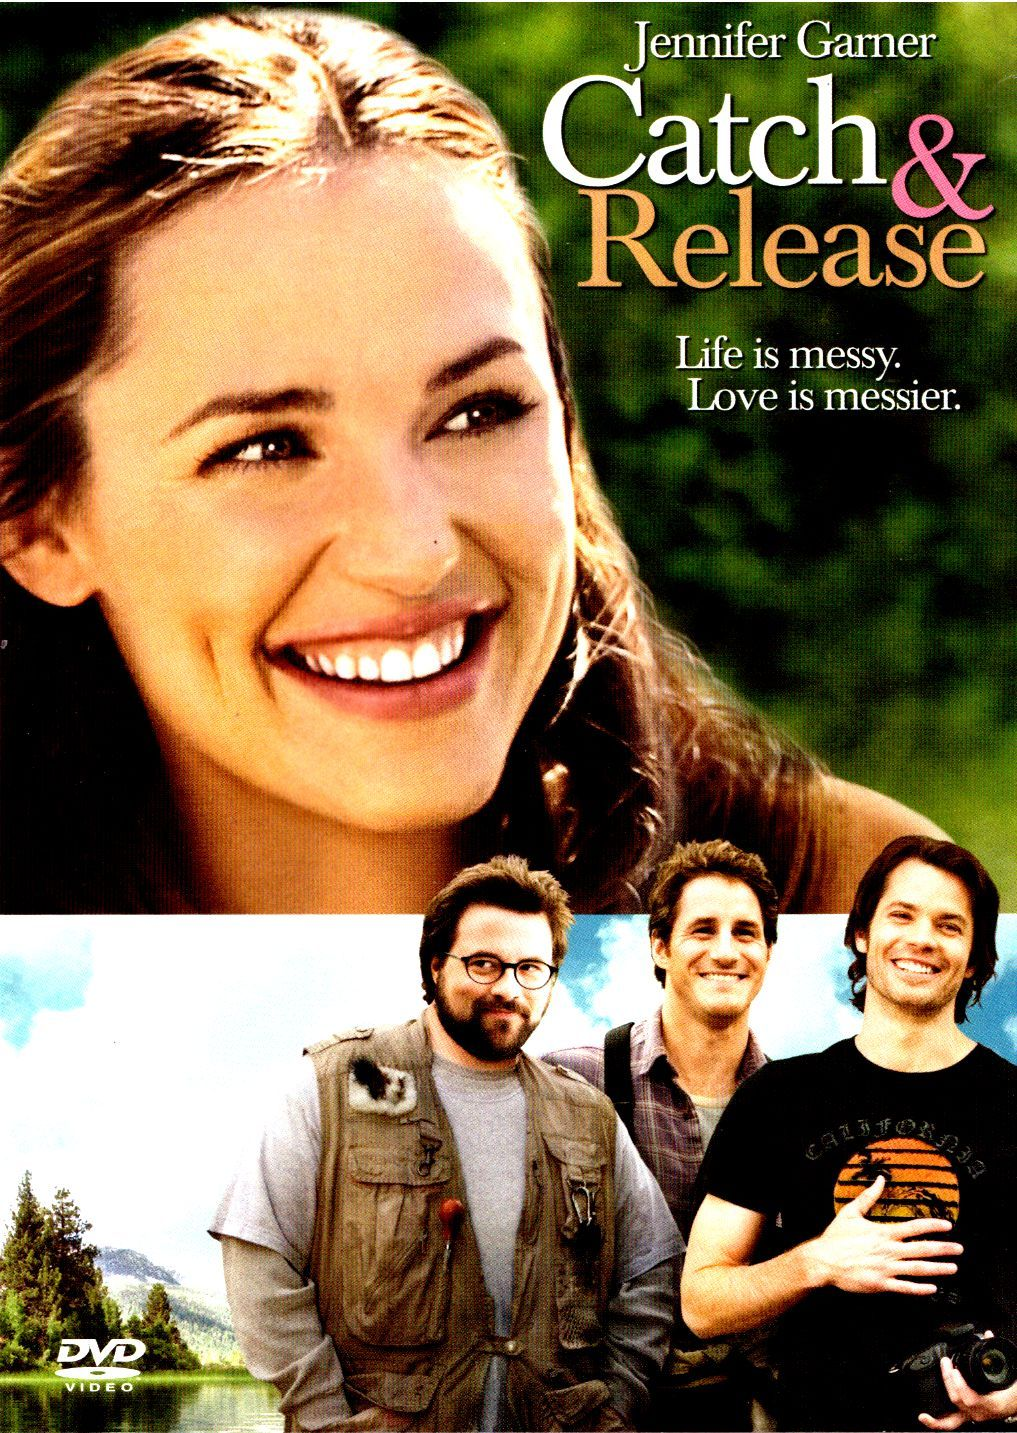 NEW Catch and Release (DVD, 2007) Jennifer Garner